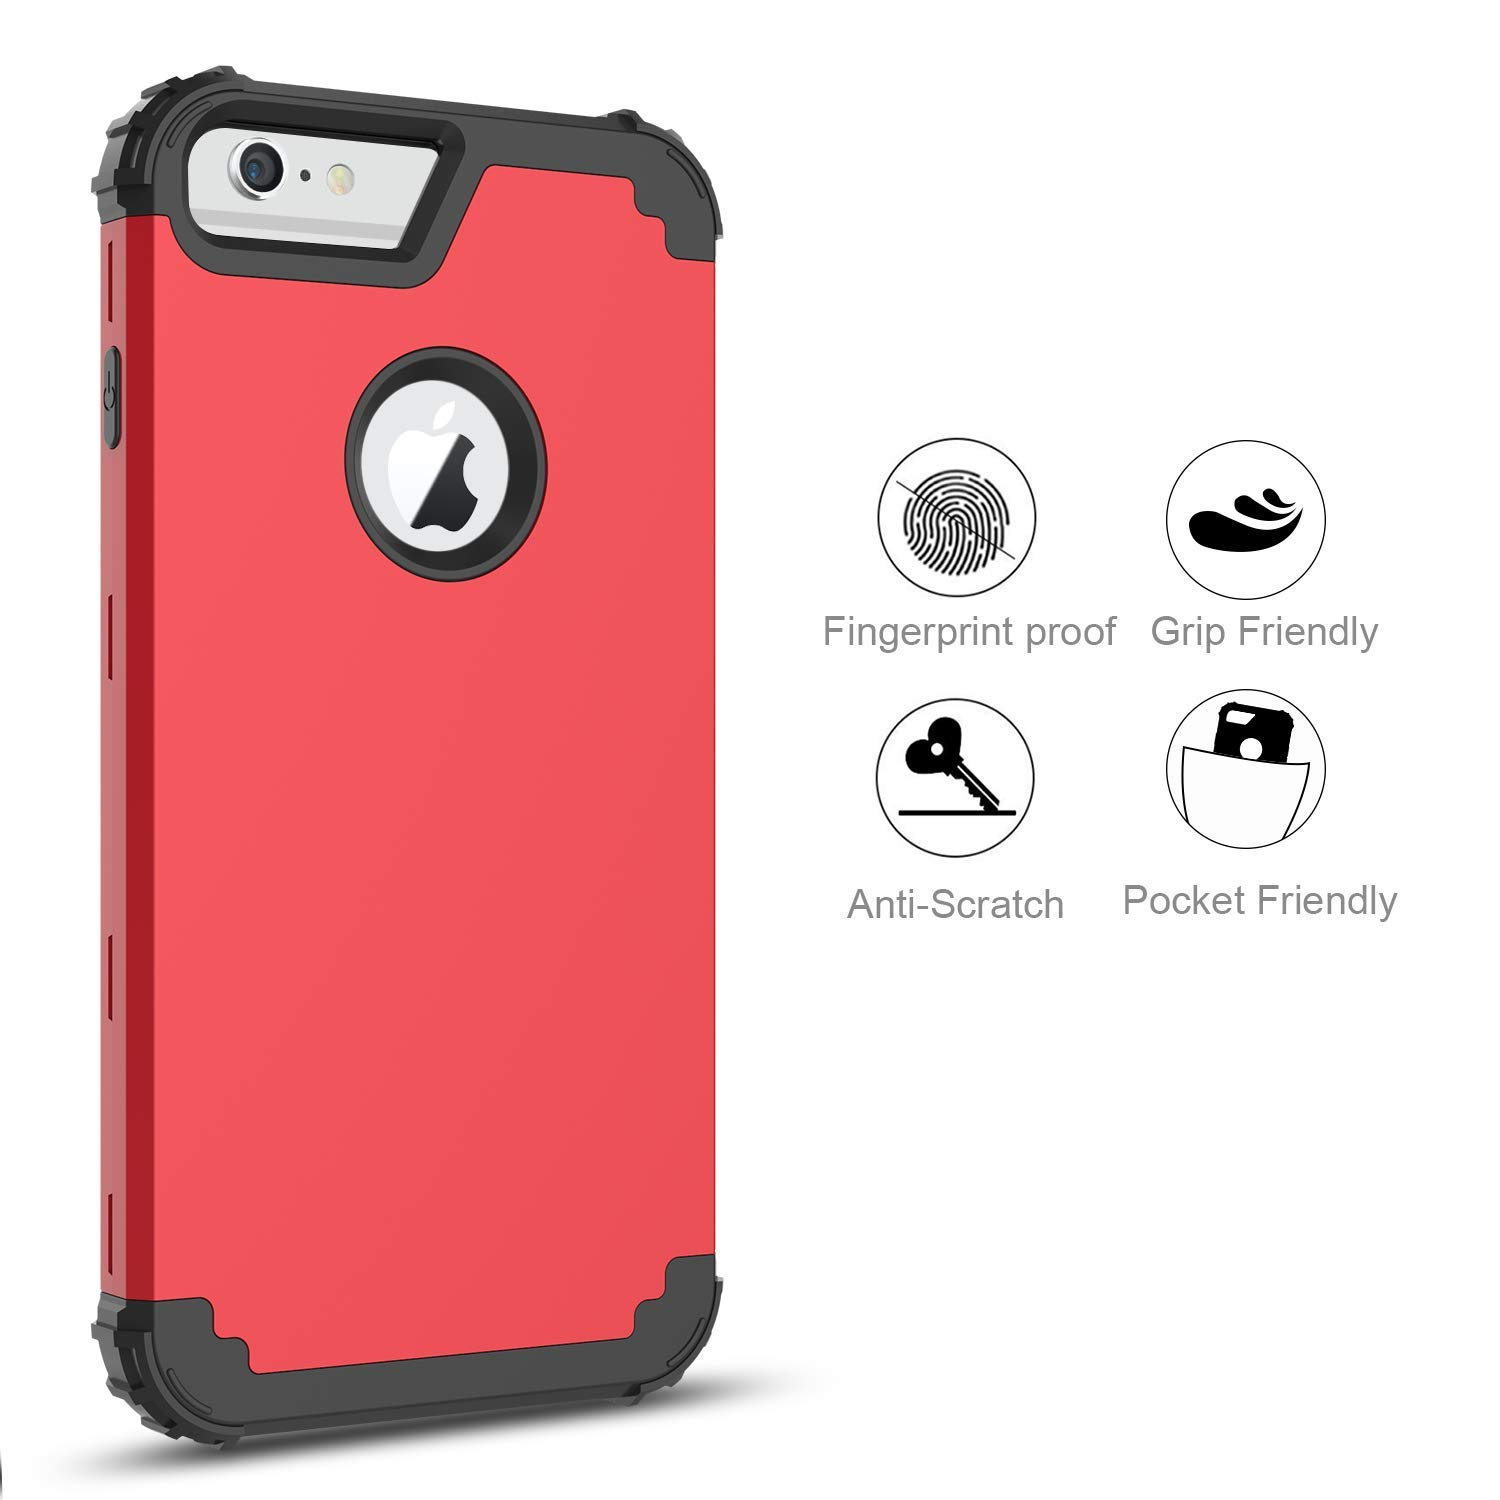 iPhone 6S Plus Case, iPhone 6 Plus Case, BENTOBEN 3 in 1 Hybrid Heavy Duty Rugged Hard PC Soft Silicone Bumper Shockproof Anti Slip Protective Case ...